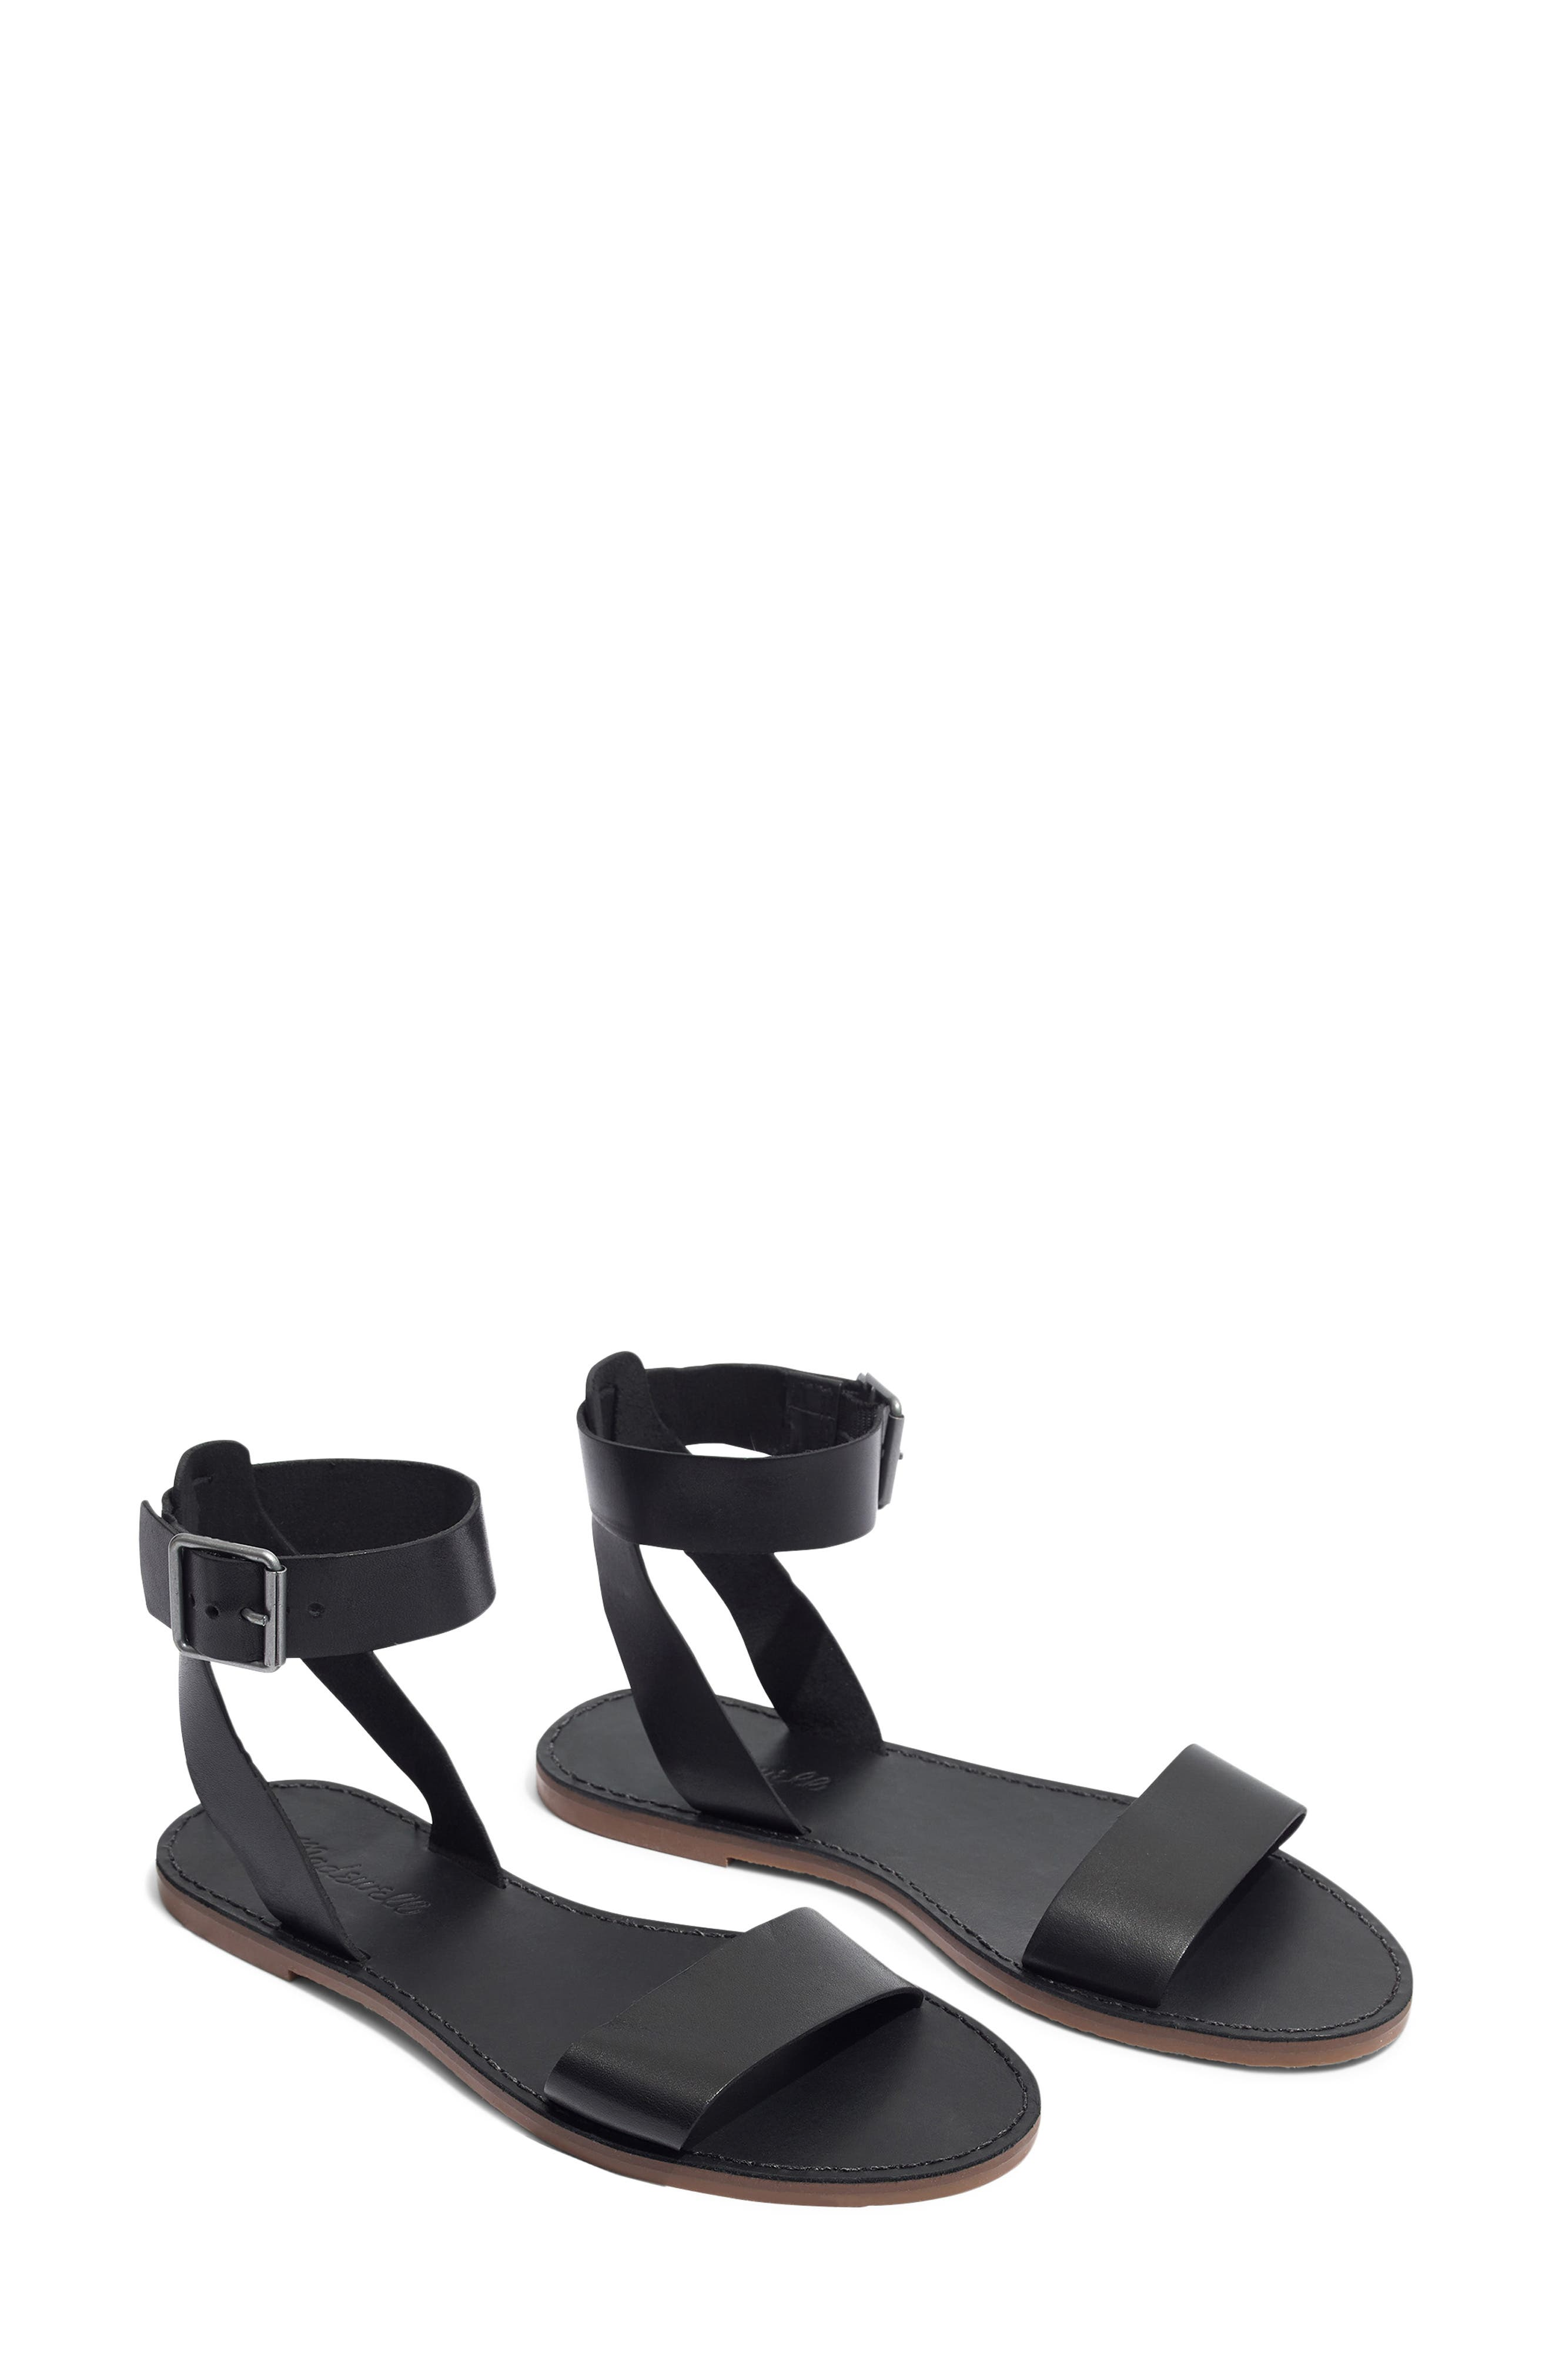 MADEWELL, The Boardwalk Ankle Strap Sandal, Main thumbnail 1, color, TRUE BLACK LEATHER